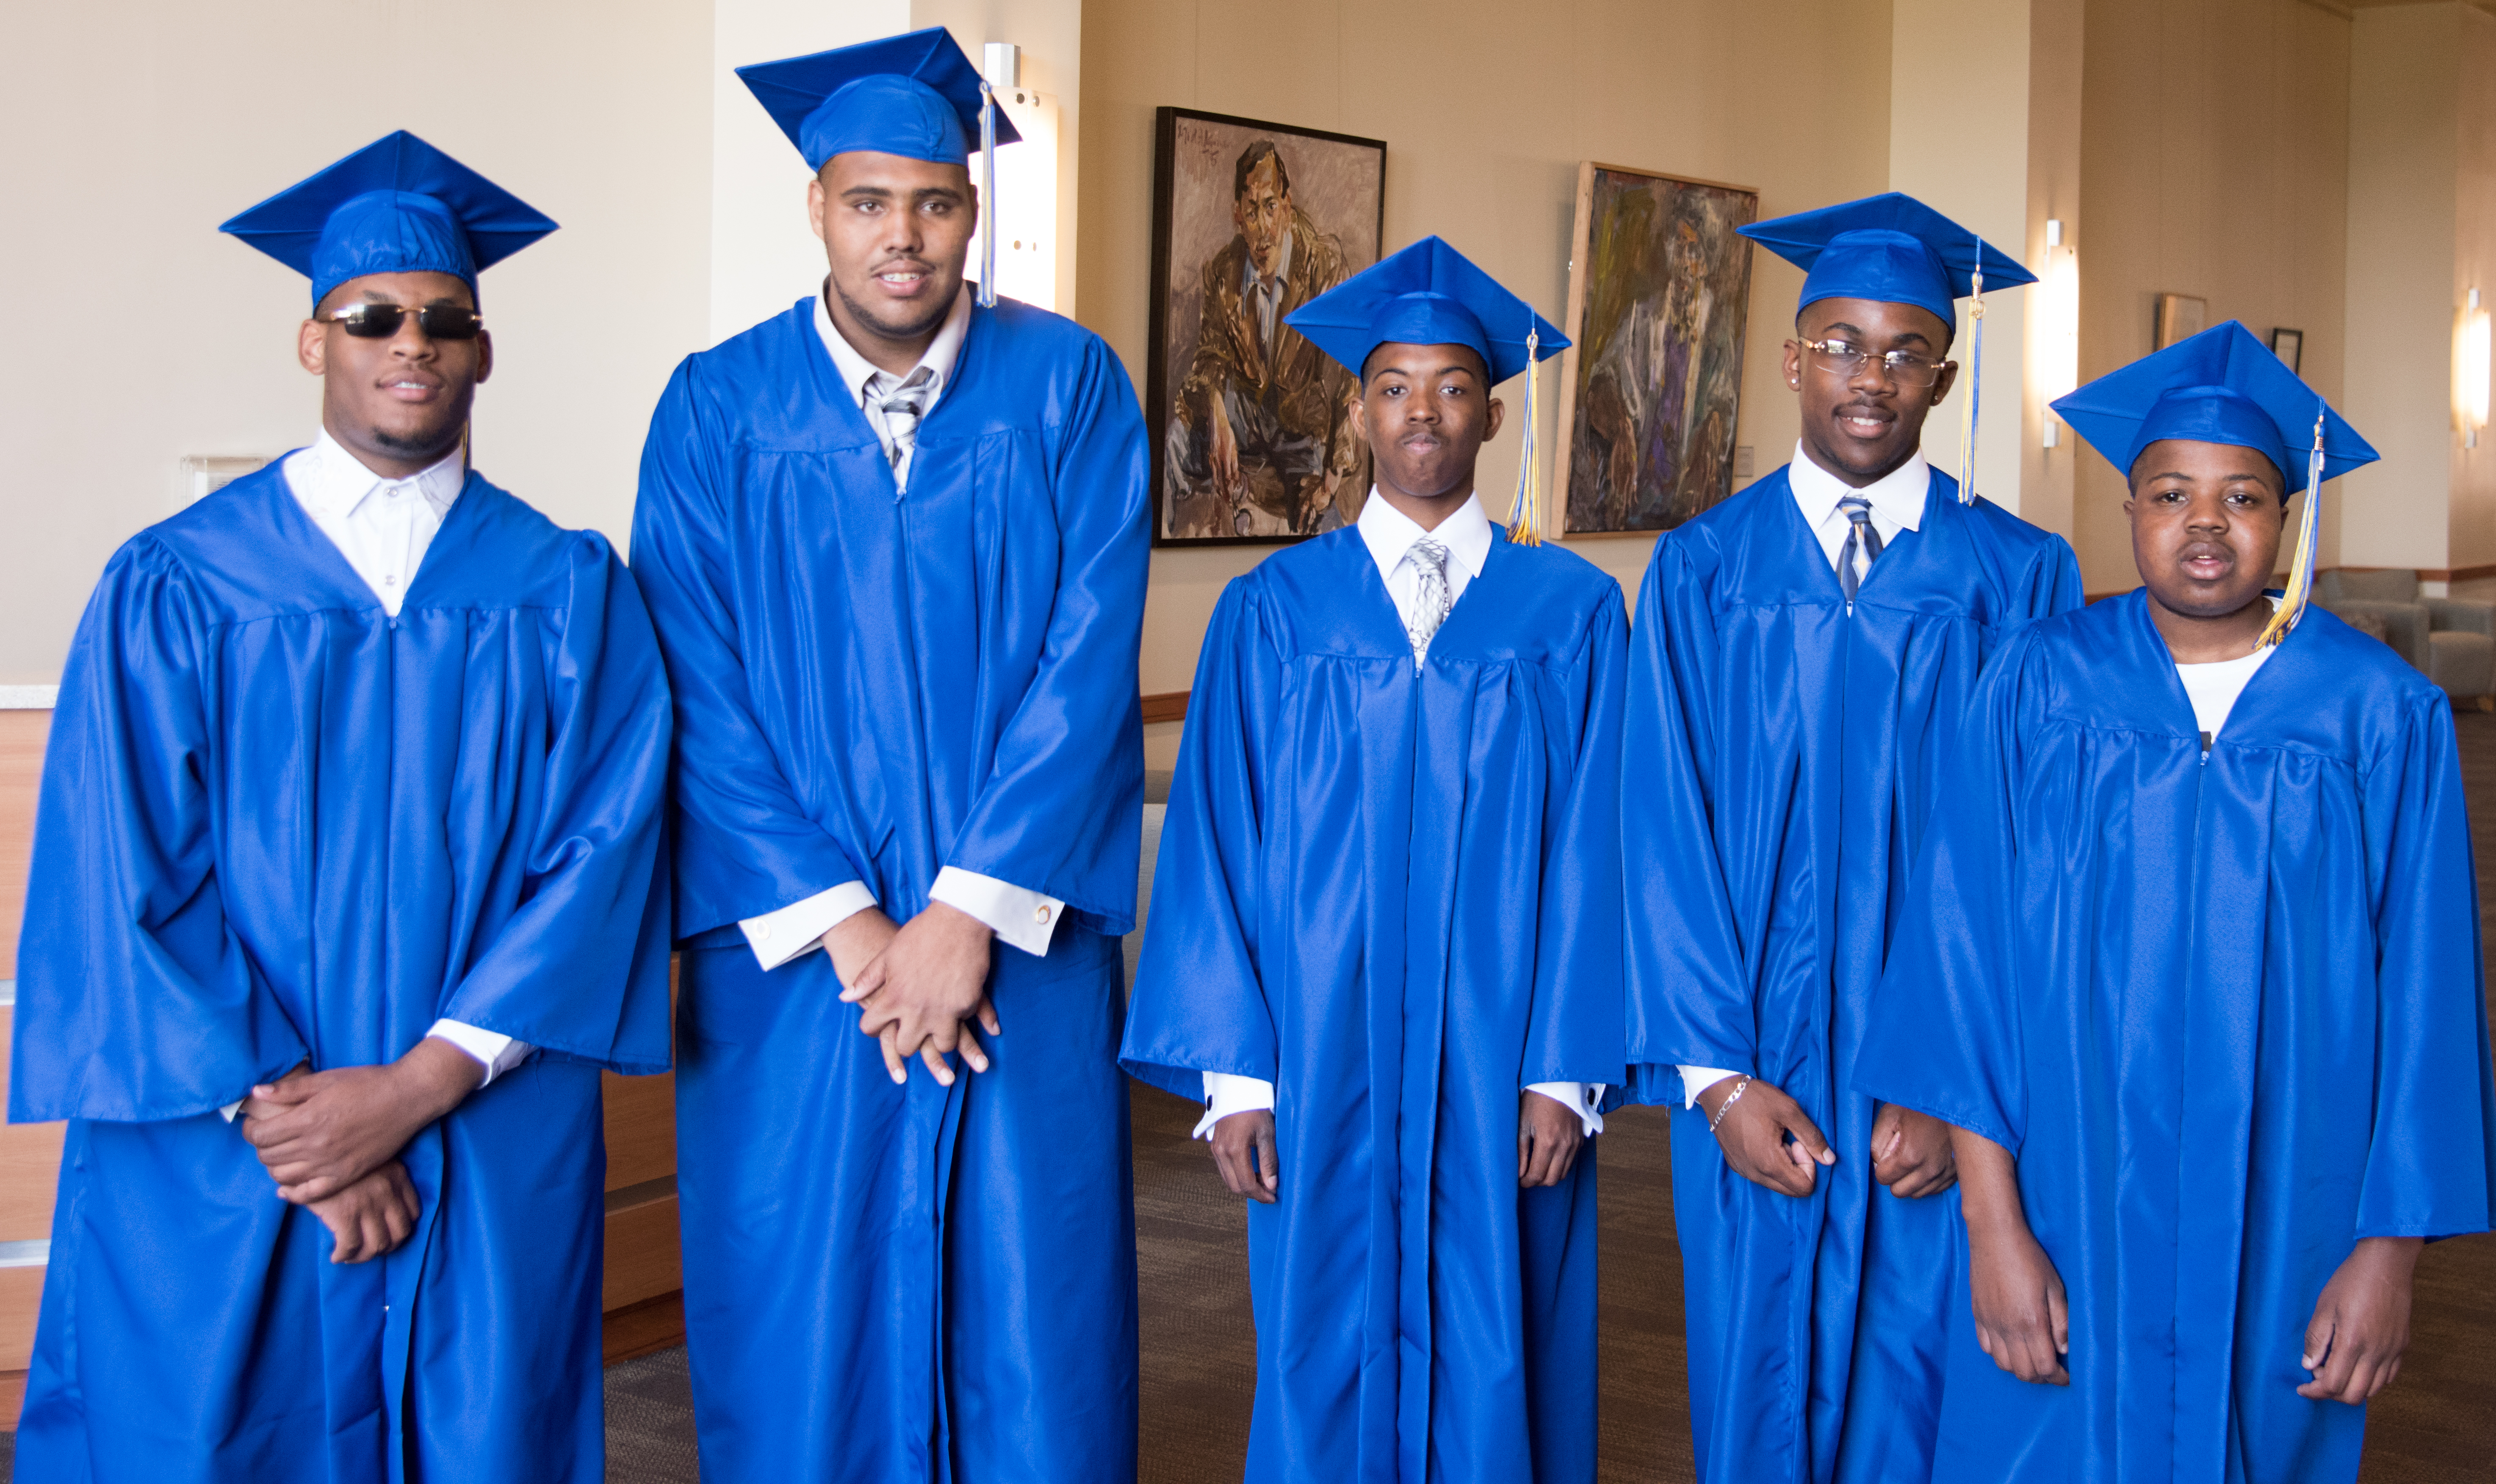 From left, Darrius Patterson, Derreck Vaughn, Larry Flagg, Dennis Bryant, and Anthony Bazemore Jr. graduated from the Project SEARCH program on June 3, along with three students not pictured: Eric Brown, Brianna Davis, and Brittany Thomas.